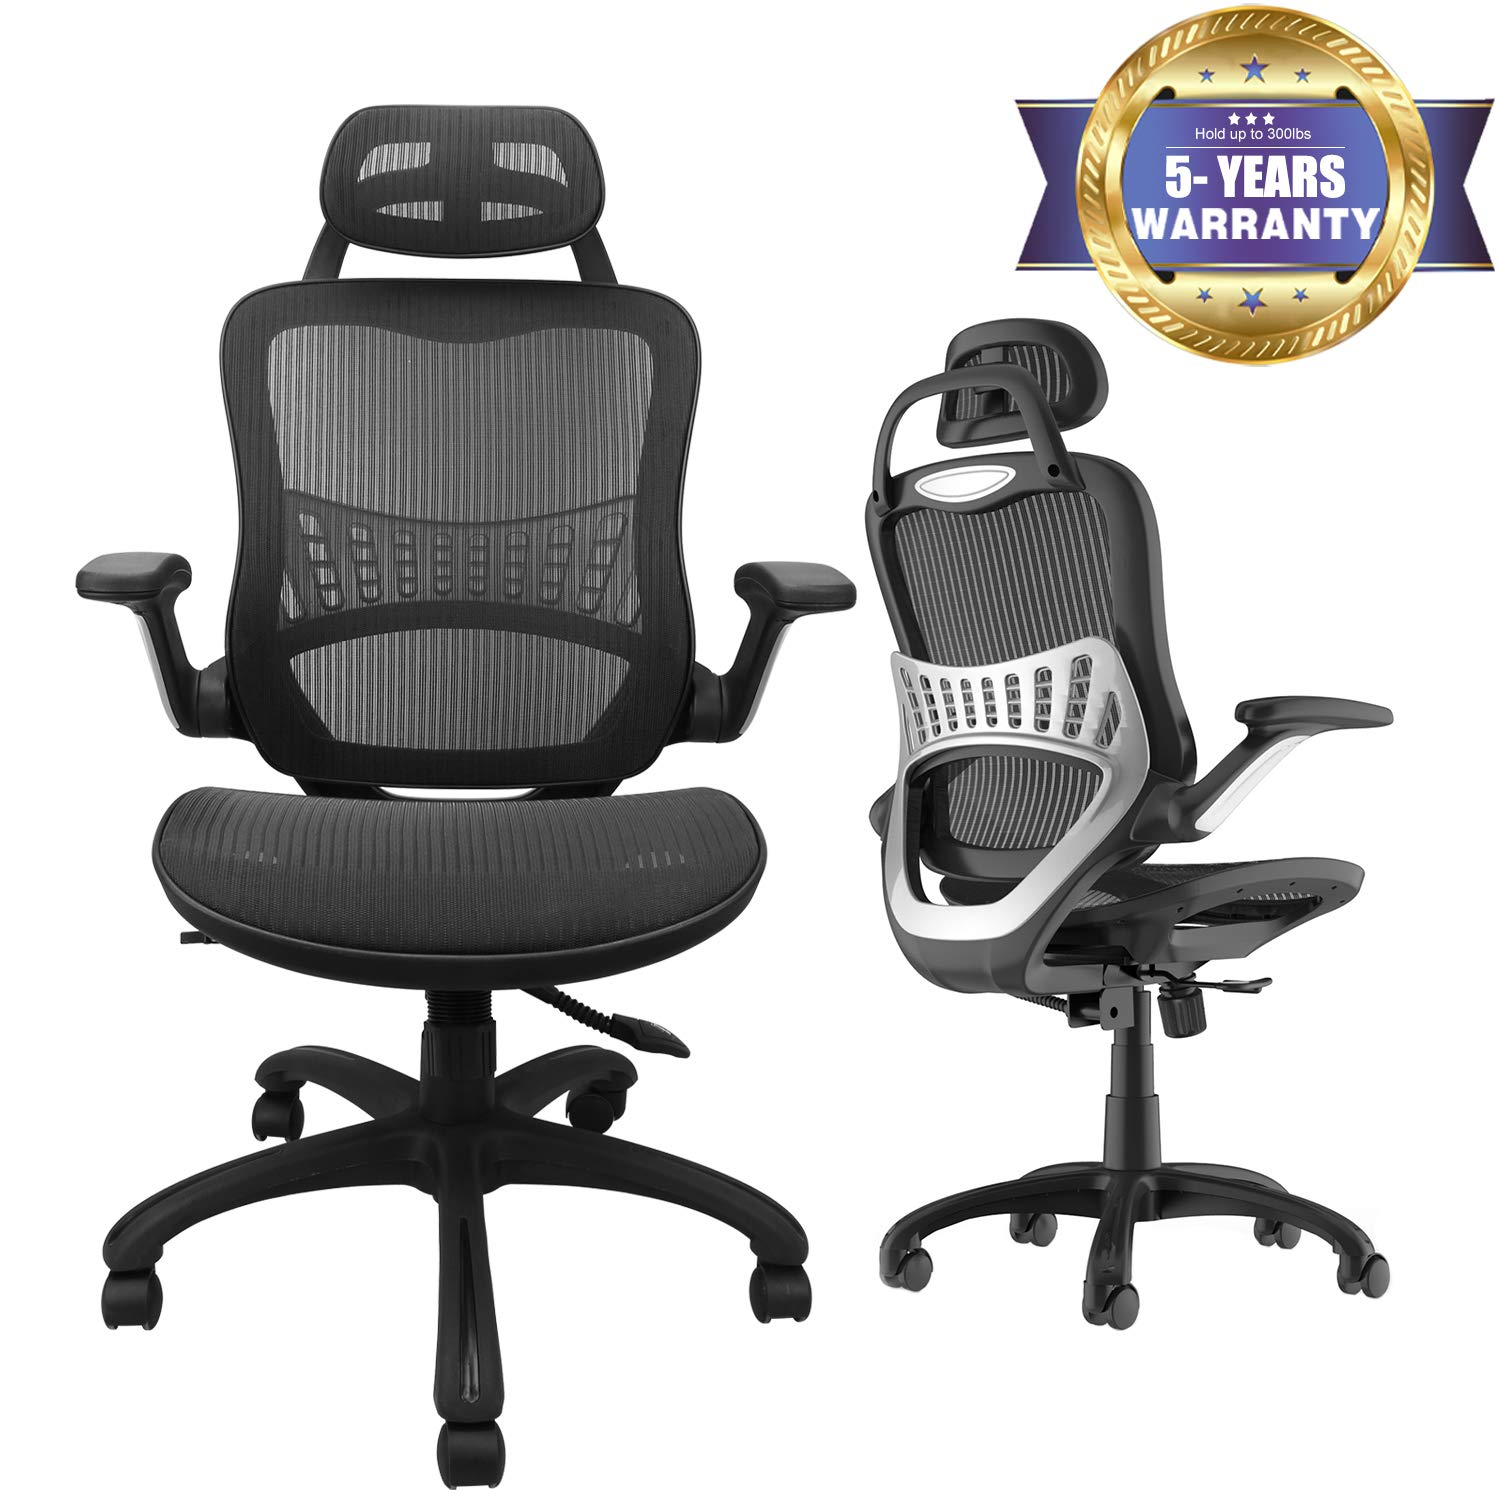 High Back Ergonomic Adjustable Office Chair with Breathable Mesh, Weight Capacity Over 300Ibs Passed BIFMA, Adjustable Headrest, Backrest and Flip-up Armrests, Computer Chair, Executive Swivel Chair by Ergousit